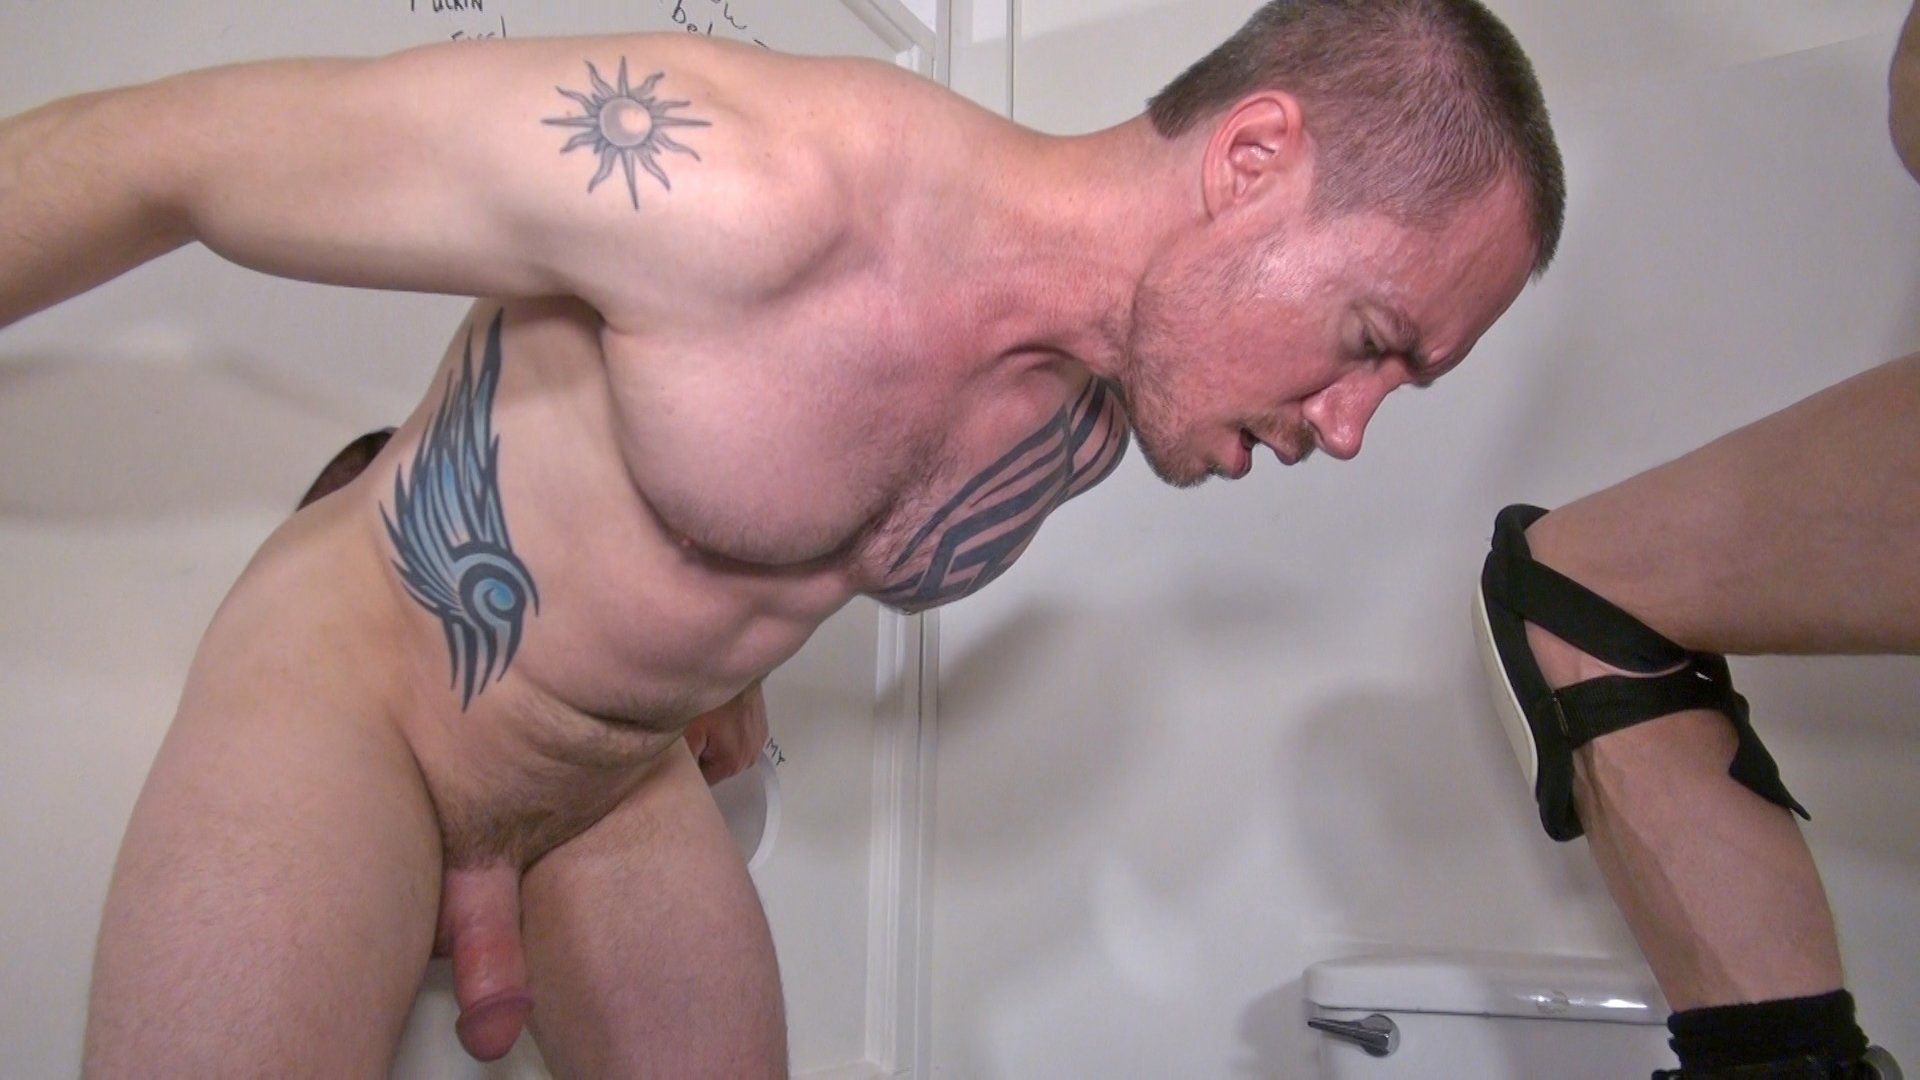 Gay anal gloryhole - XXX Sex Images. Comments: 2